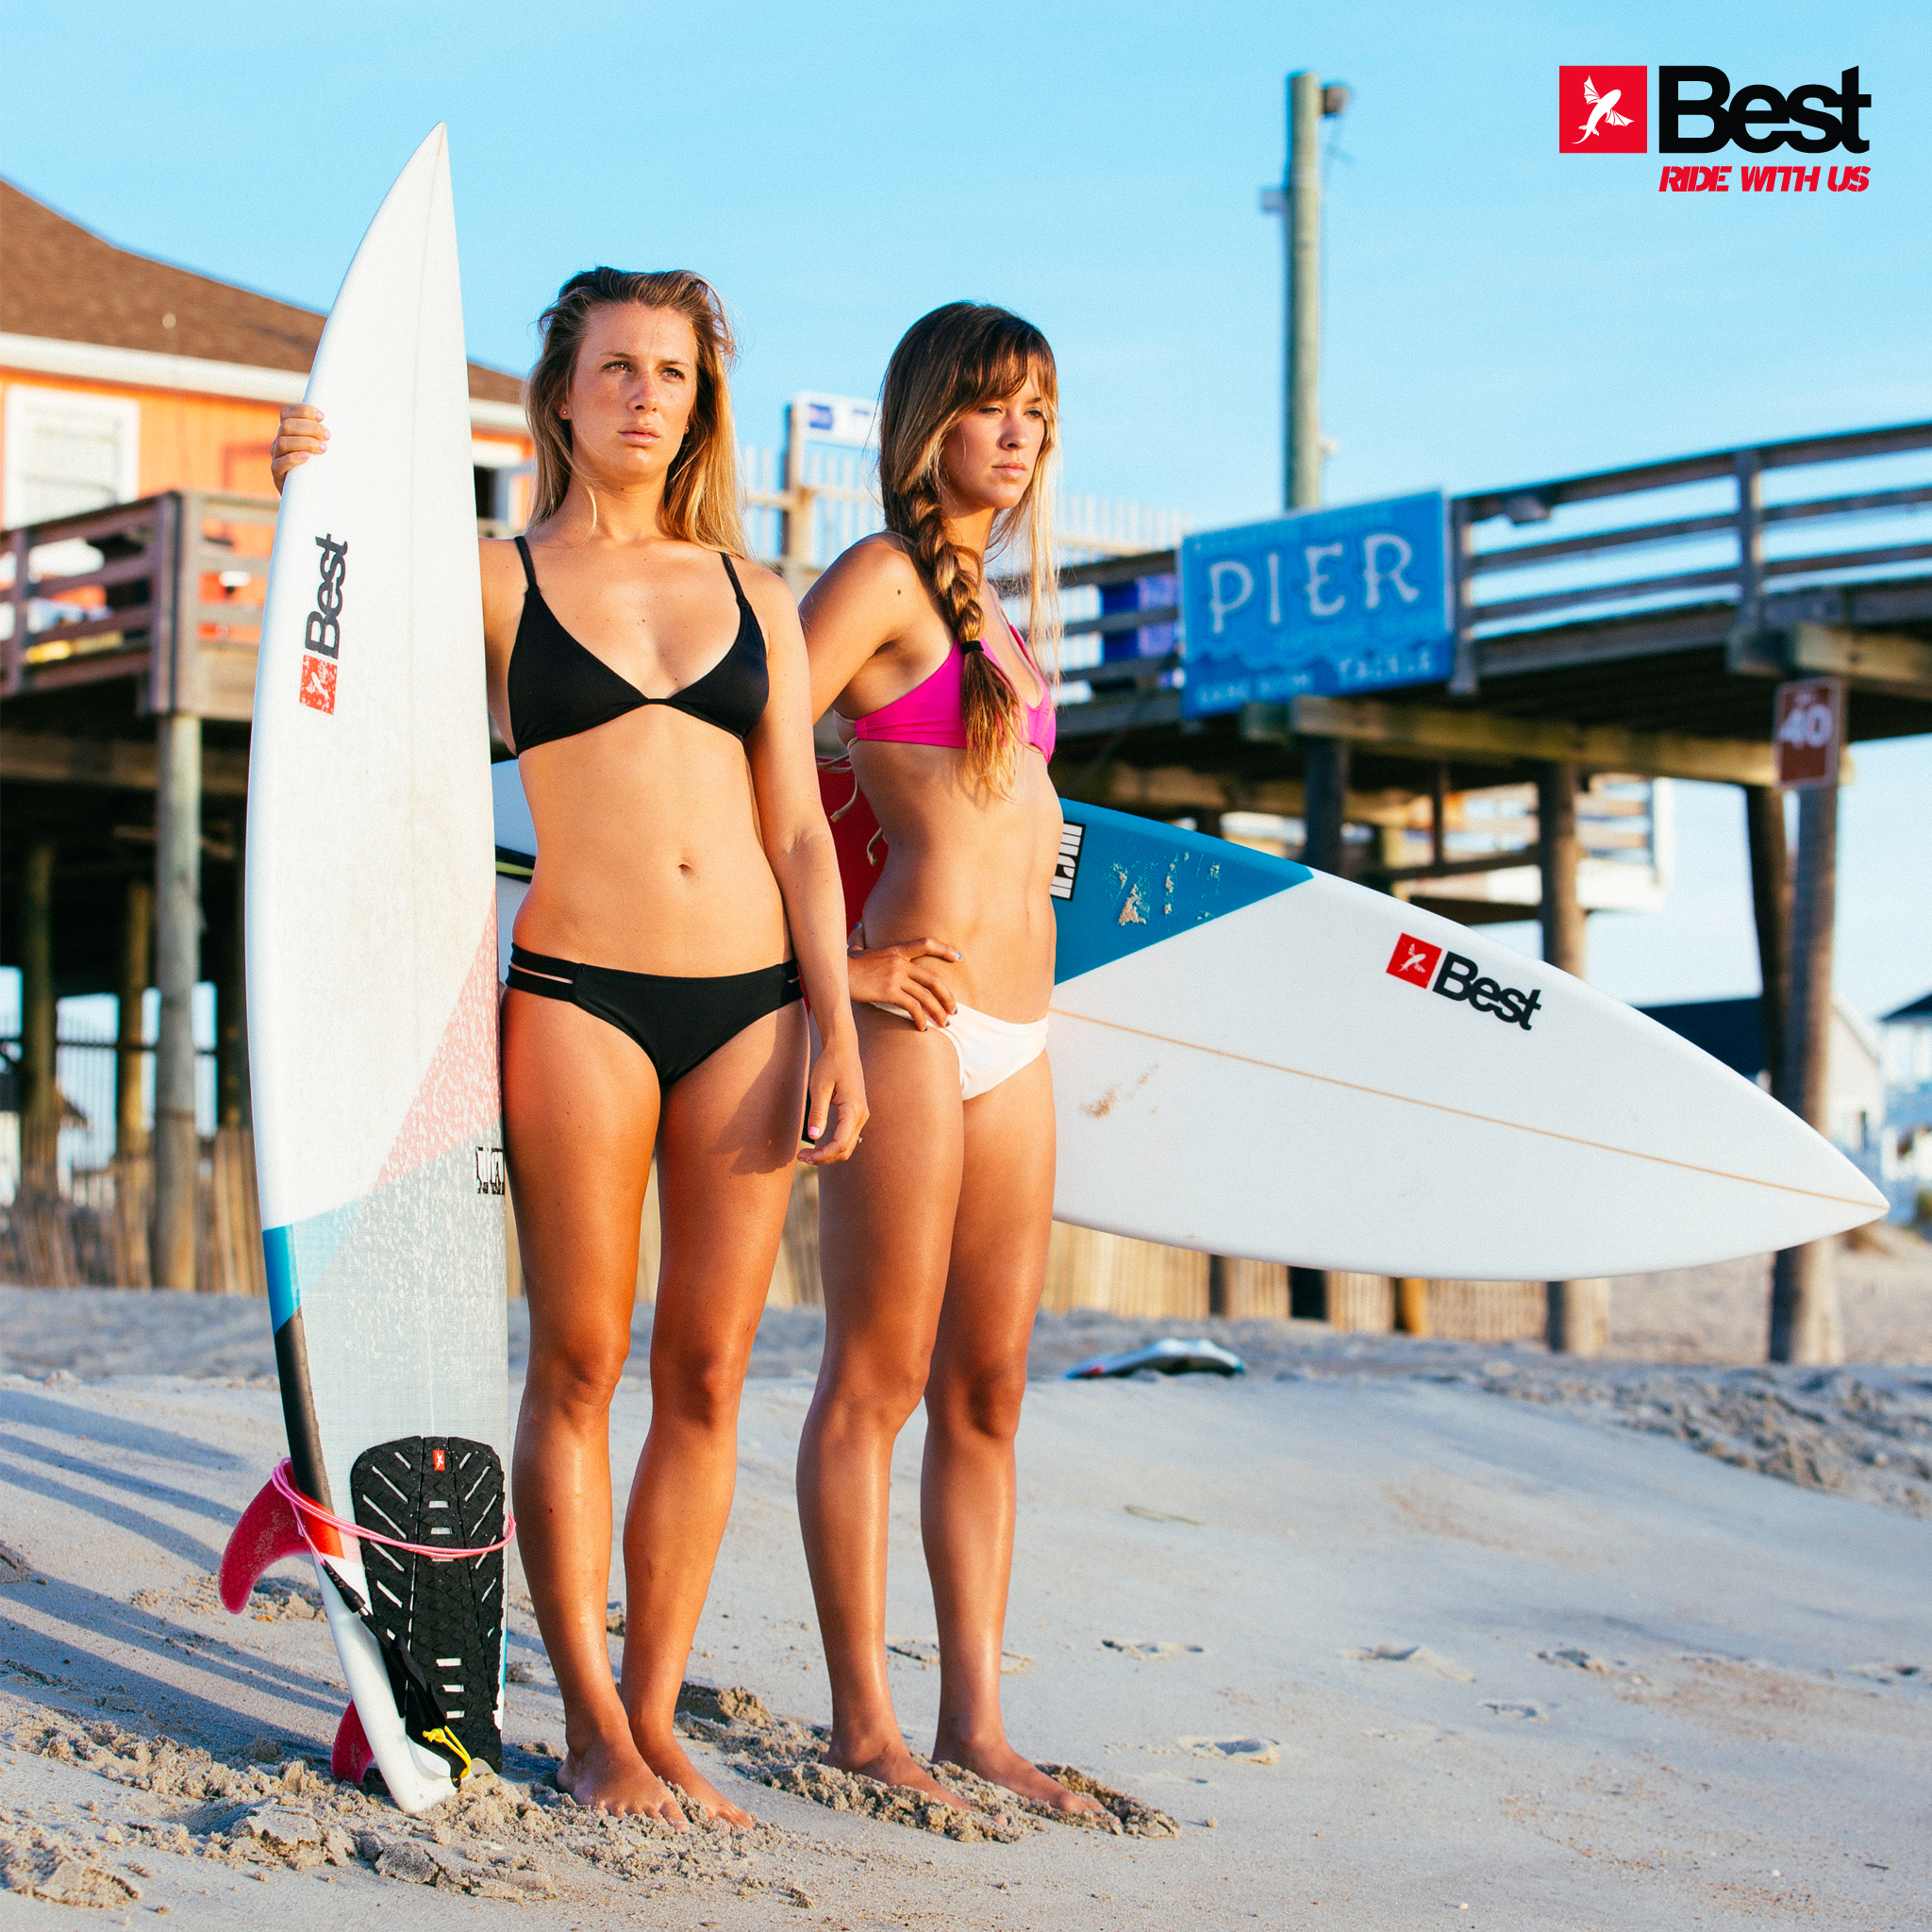 kitesurf wallpaper image - Two Best Kiteboarding kitechicks in bikini with surfboards looking to take a ride - in resolution: iPad 2 & 3 2048 X 2048